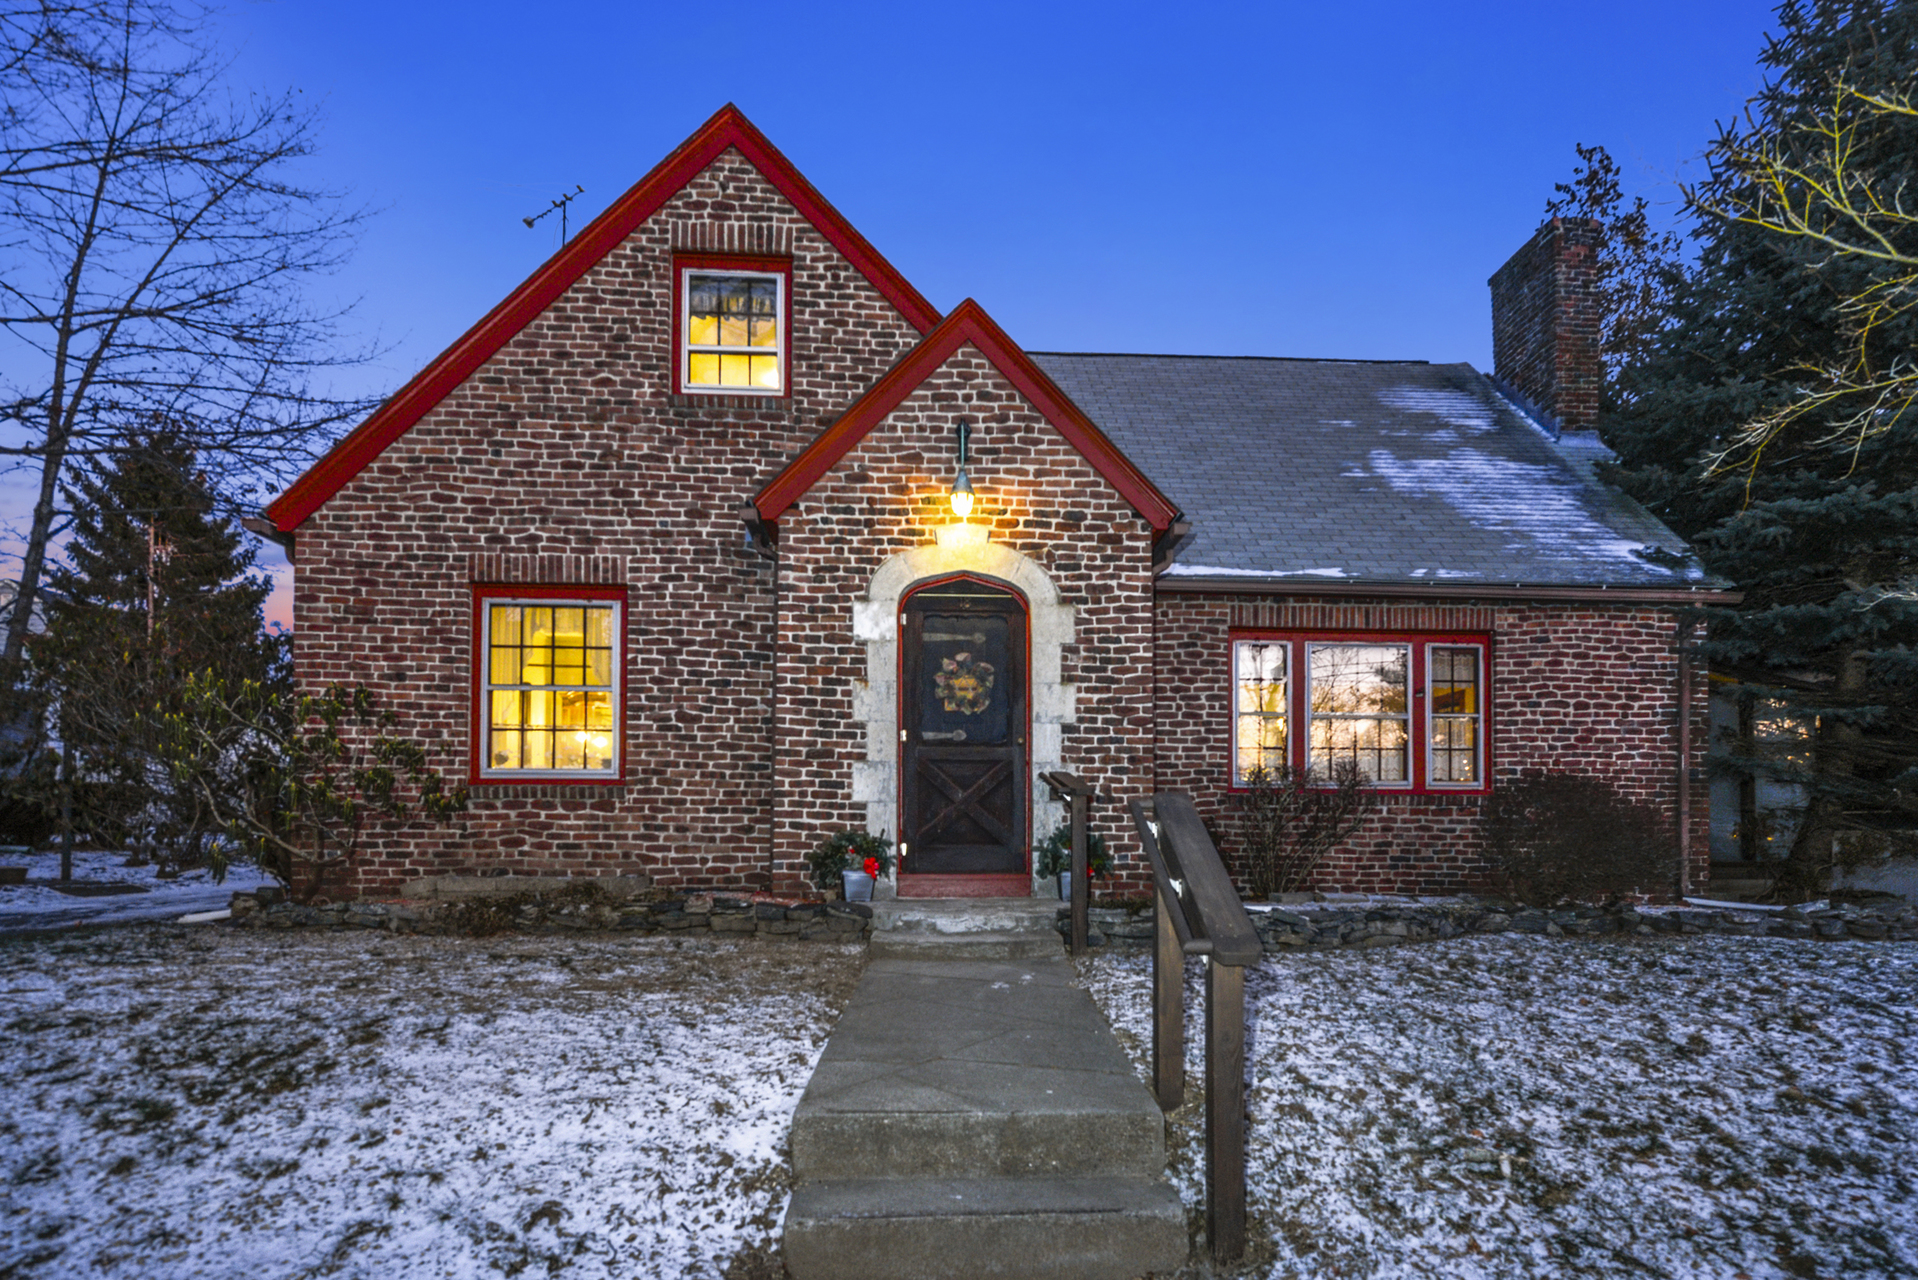 18 Dartmouth Ave, Warwick, RI | Sat 1/11 from 11:00 - 1:00pm